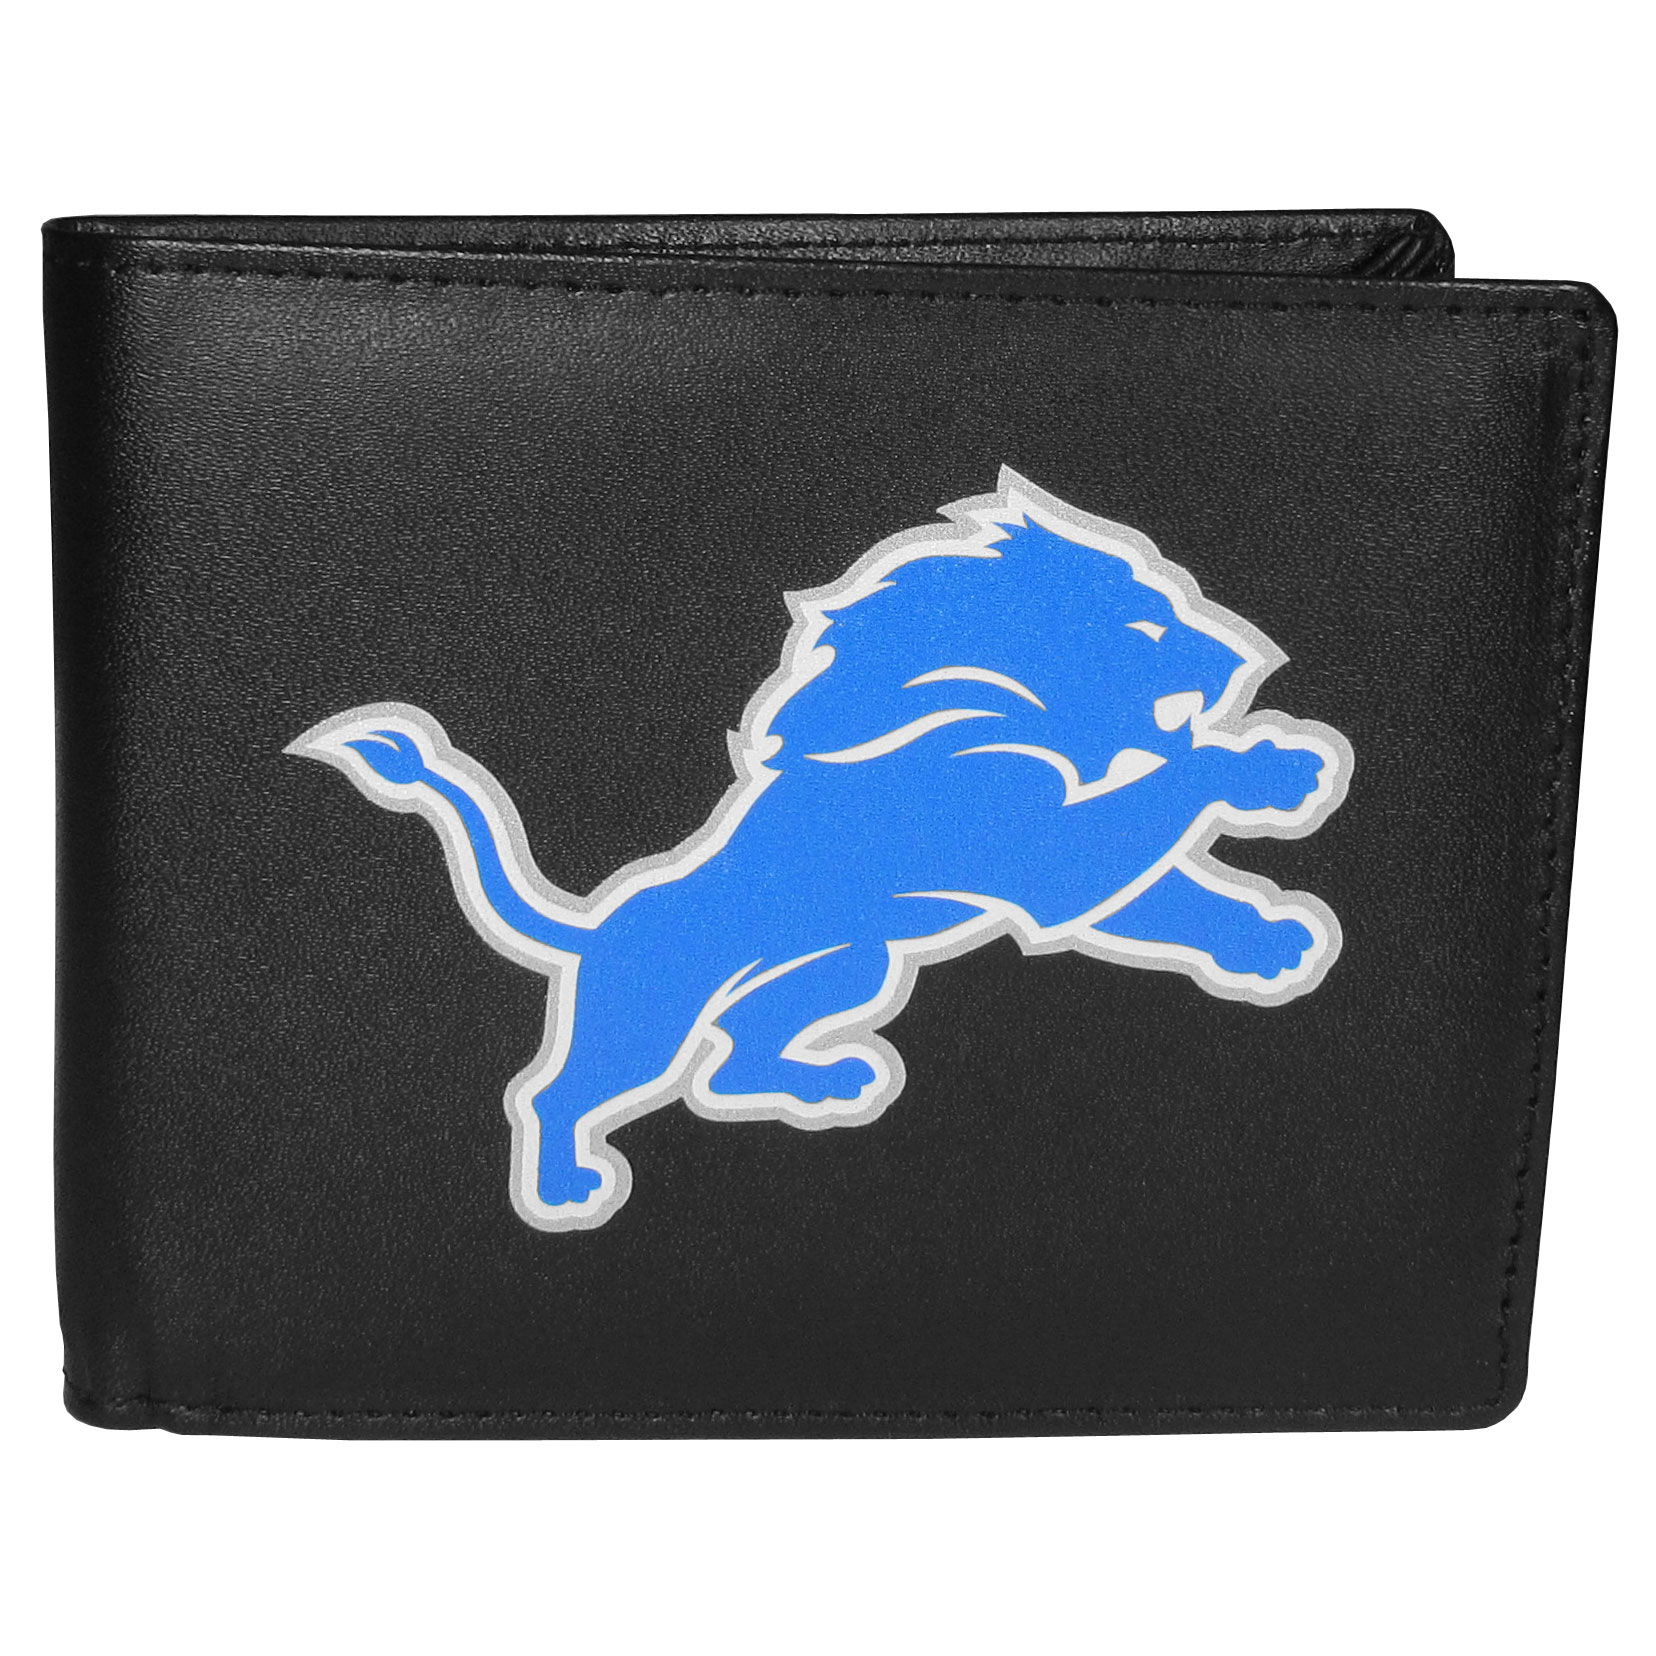 Detroit Lions Leather Bi-fold Wallet, Large Logo - Our classic fine leather bi-fold wallet is meticulously crafted with genuine leather that will age beautifully so you will have a quality wallet for years to come. The wallet opens to a large, billfold pocket and numerous credit card slots and has a convenient windowed ID slot. The front of the wallet features an extra large Detroit Lions printed logo.